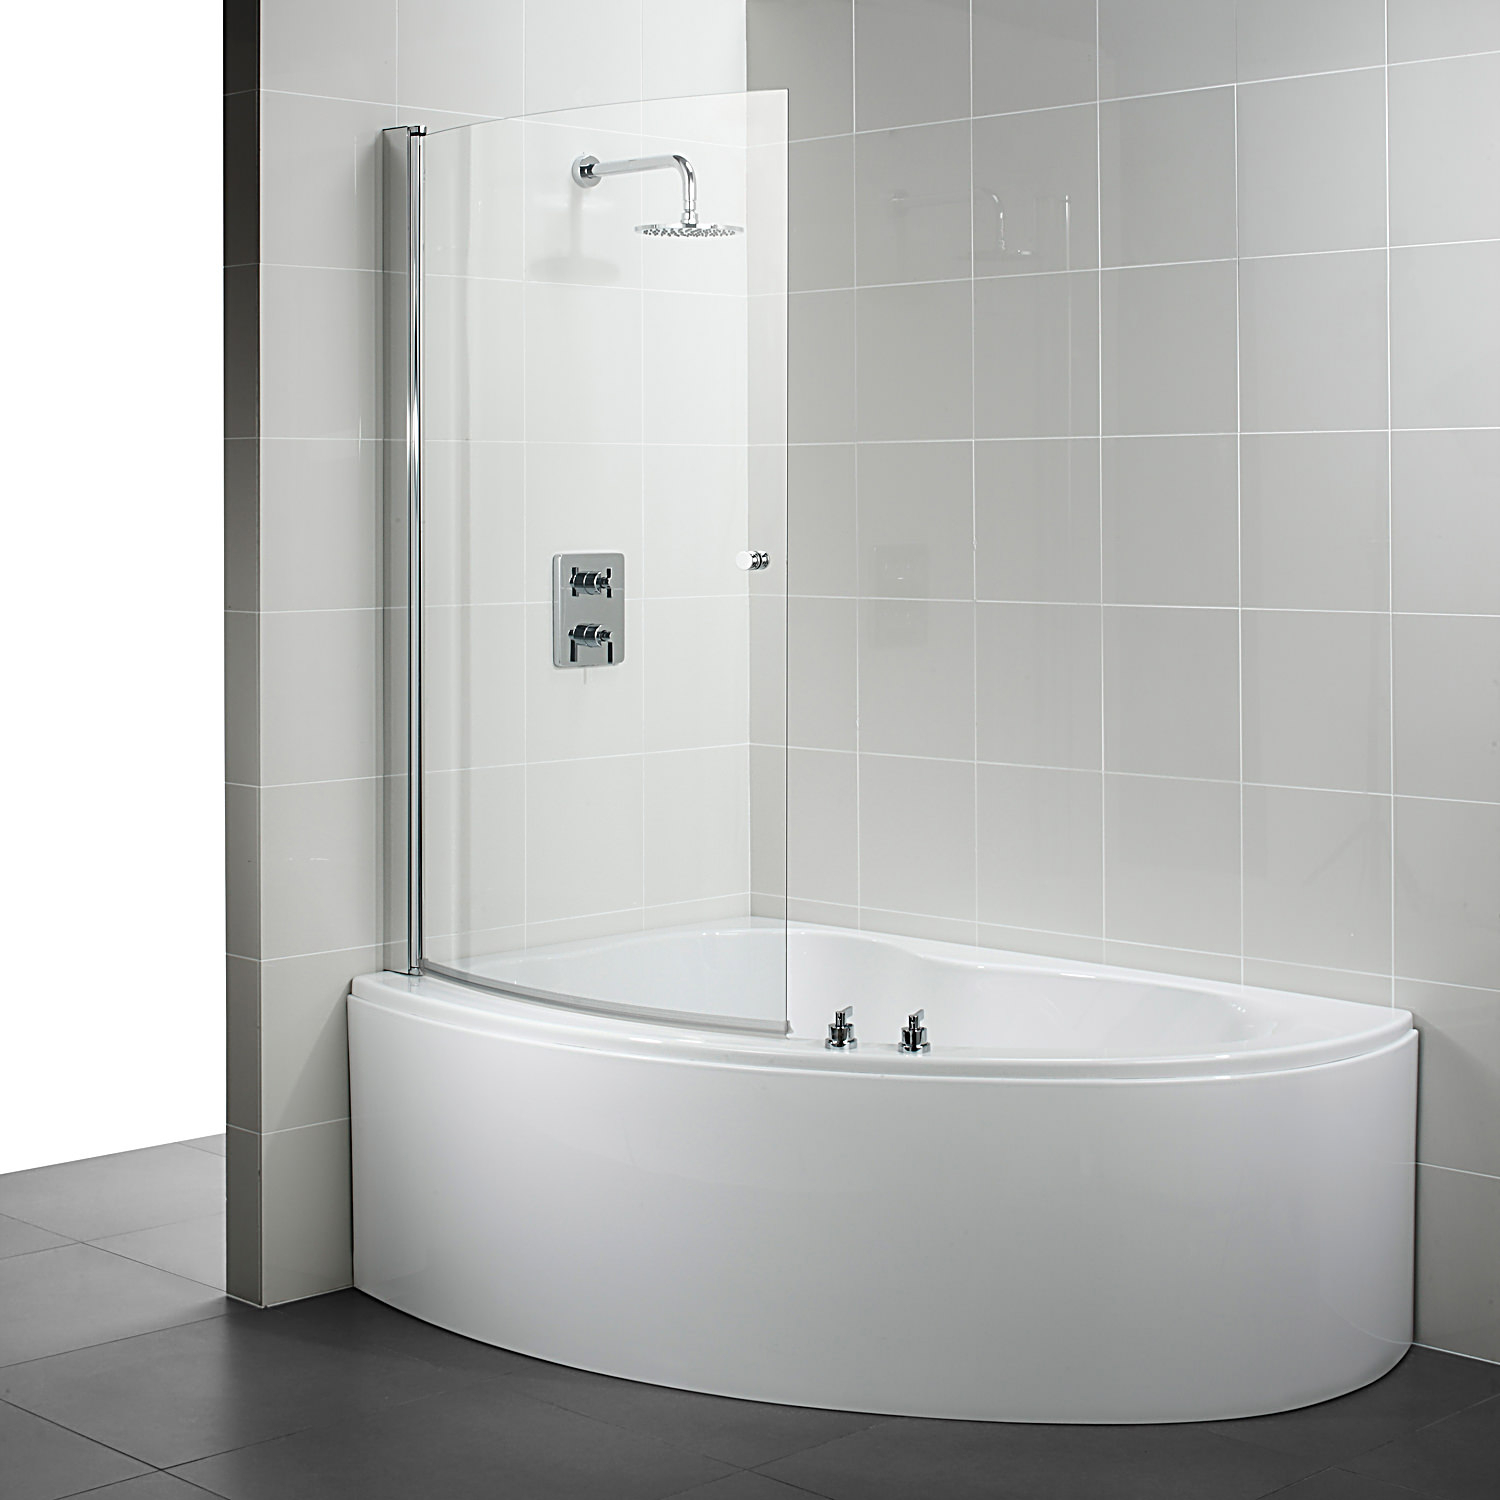 Corner Tubs For Small Bathrooms You Ll Love In 2020 Visualhunt